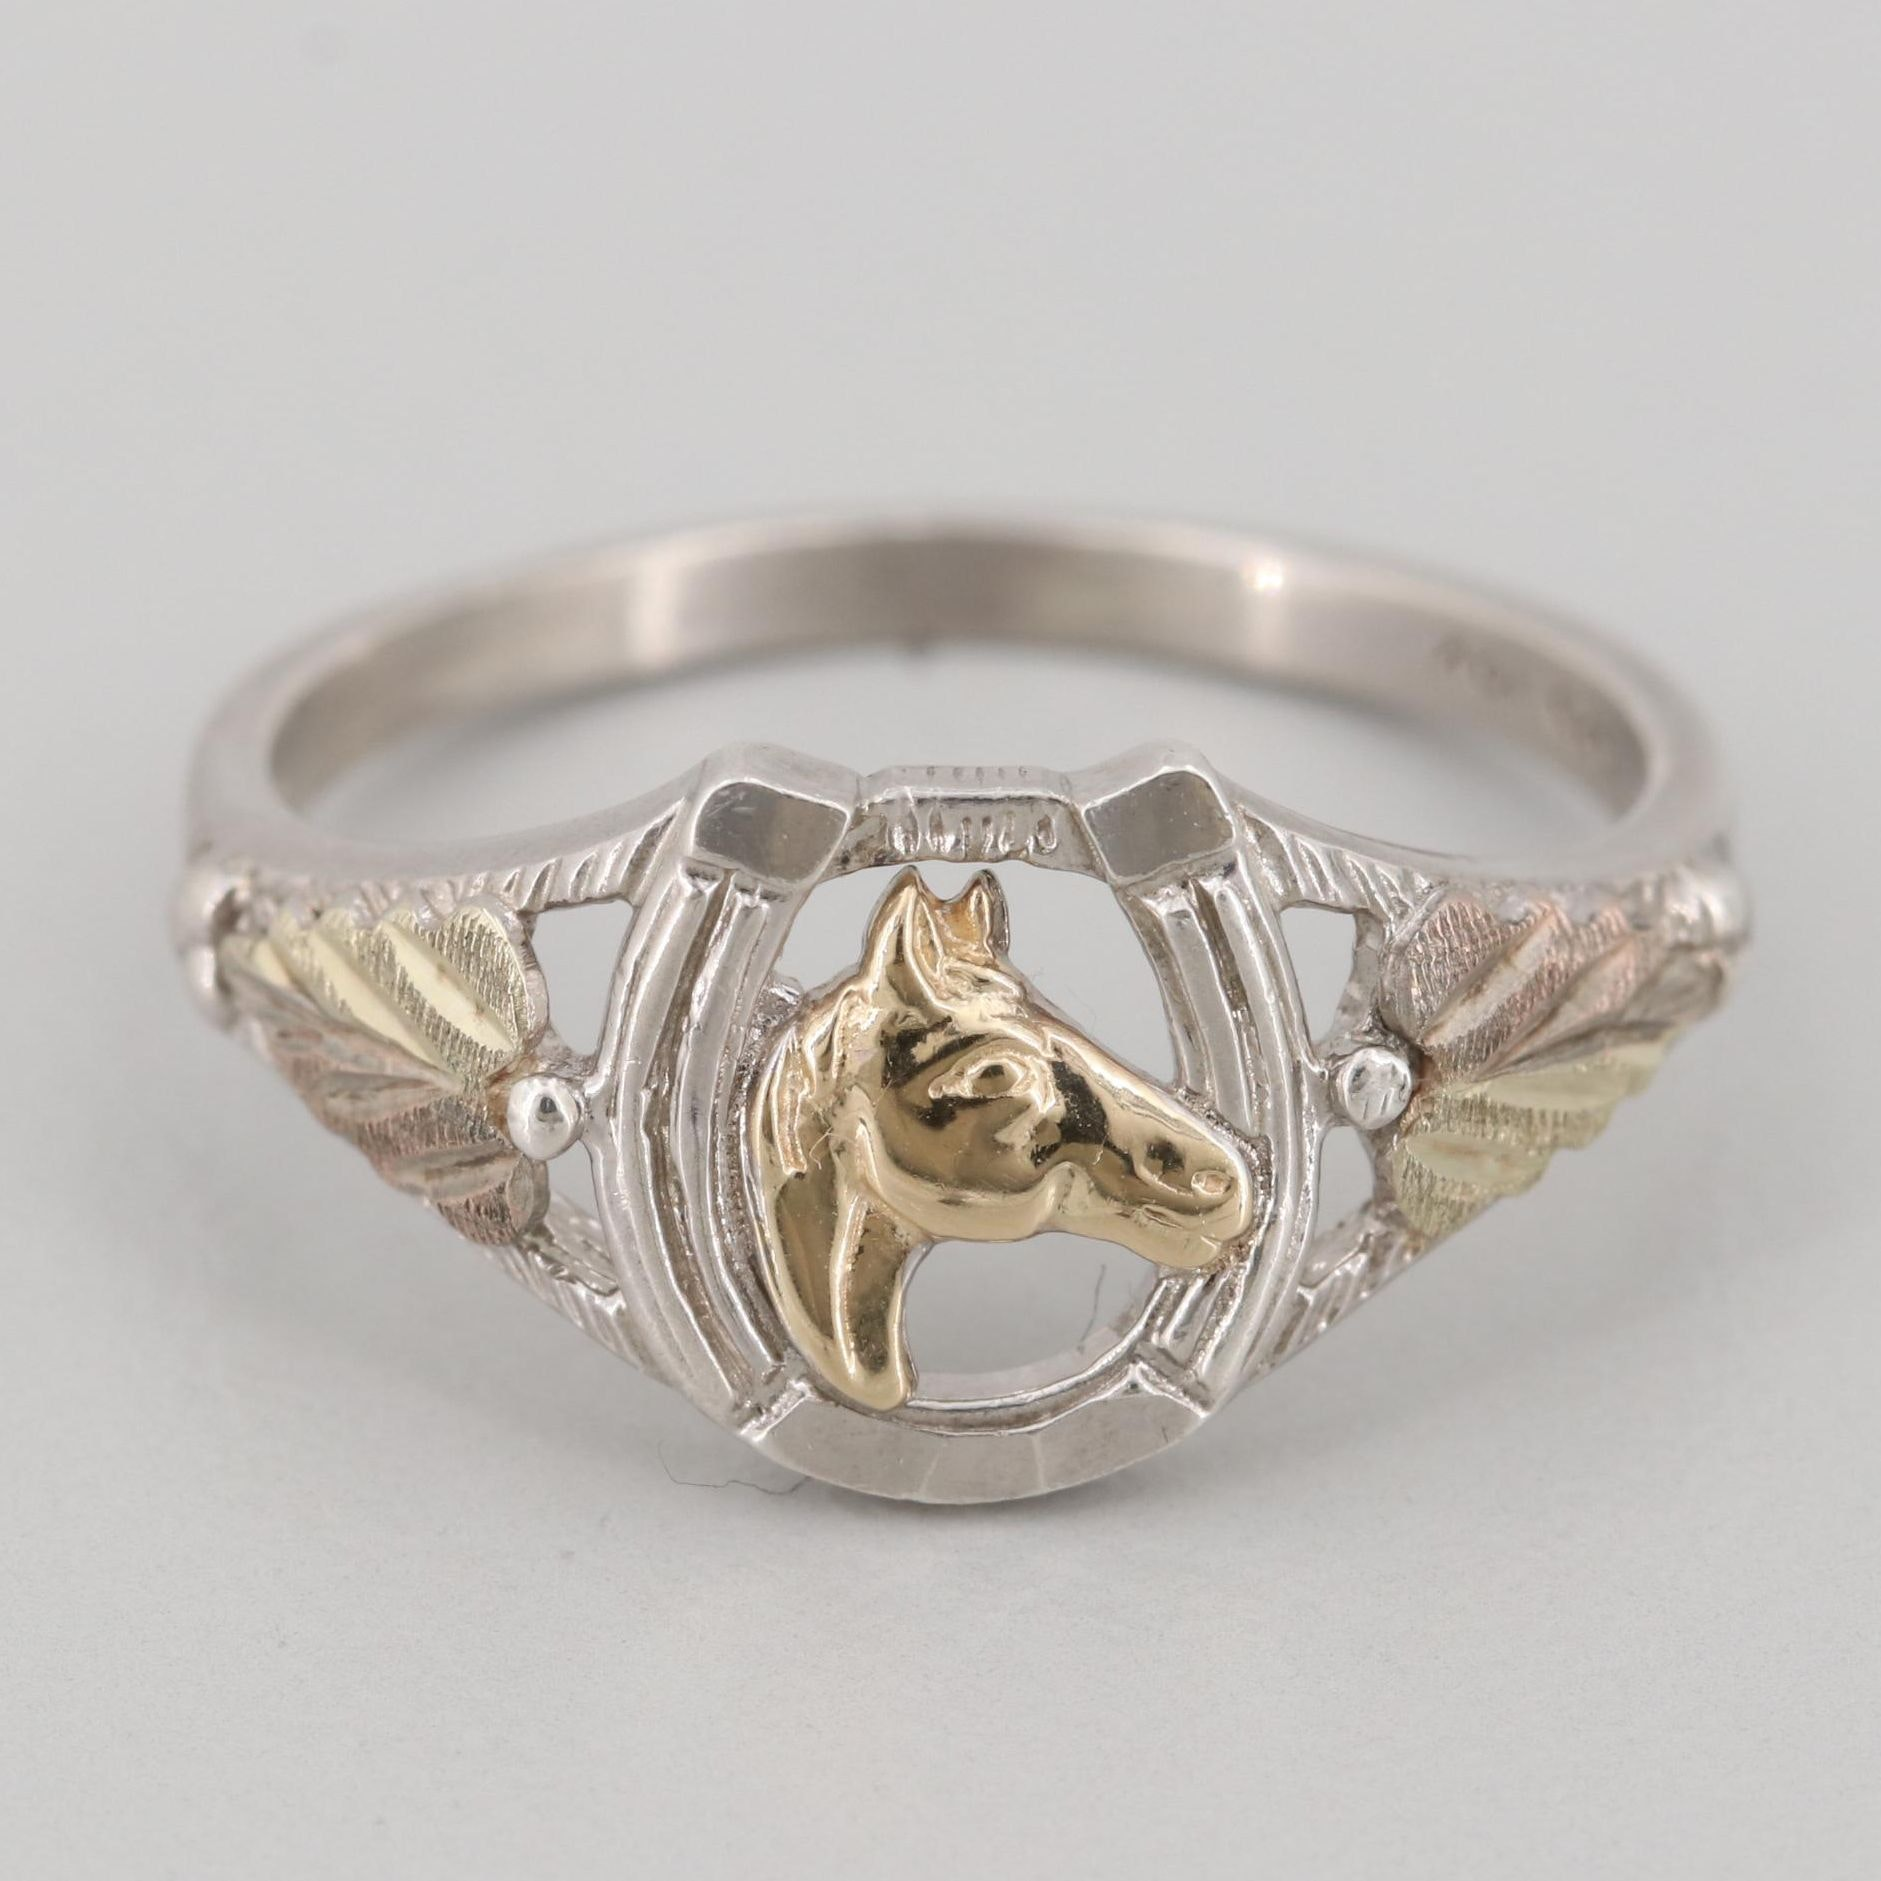 Sterling Silver Horseshoe Ring with Green and Yellow Gold Accents